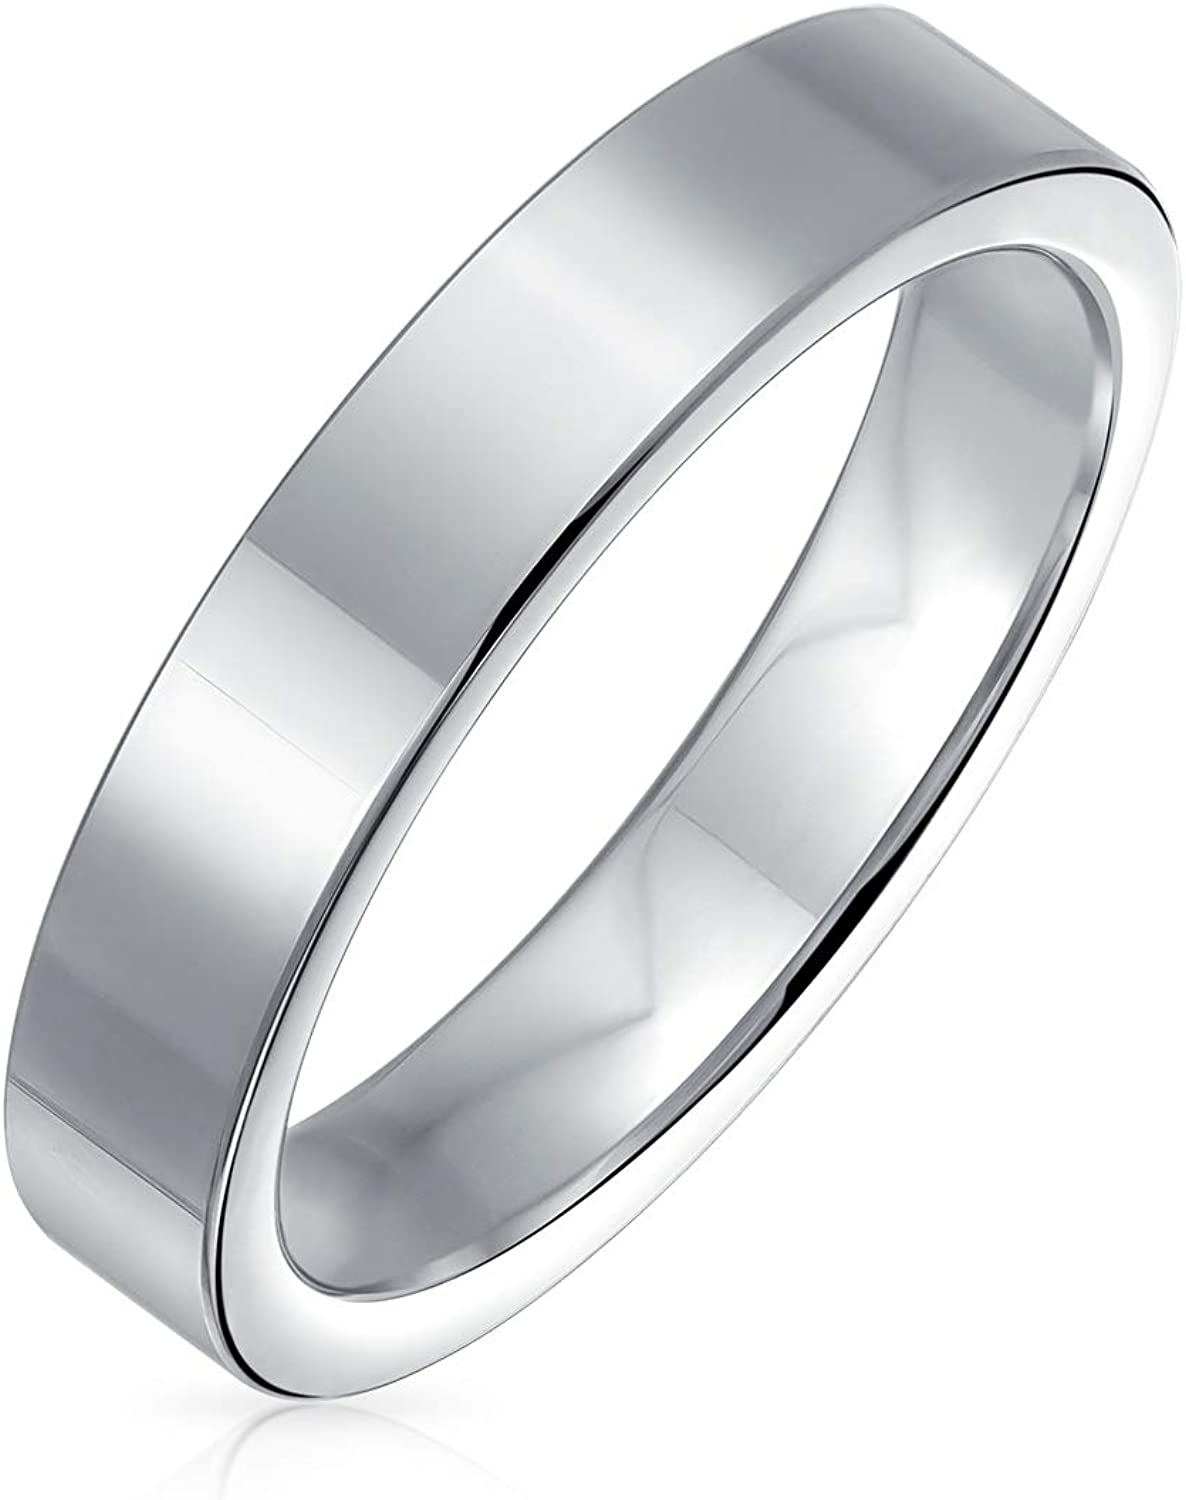 Bling Jewelry Personalized Plain Simple Dome Black Matte Couples Titanium Wedding Band Ring for Men for Women 8MM Custom Engraved